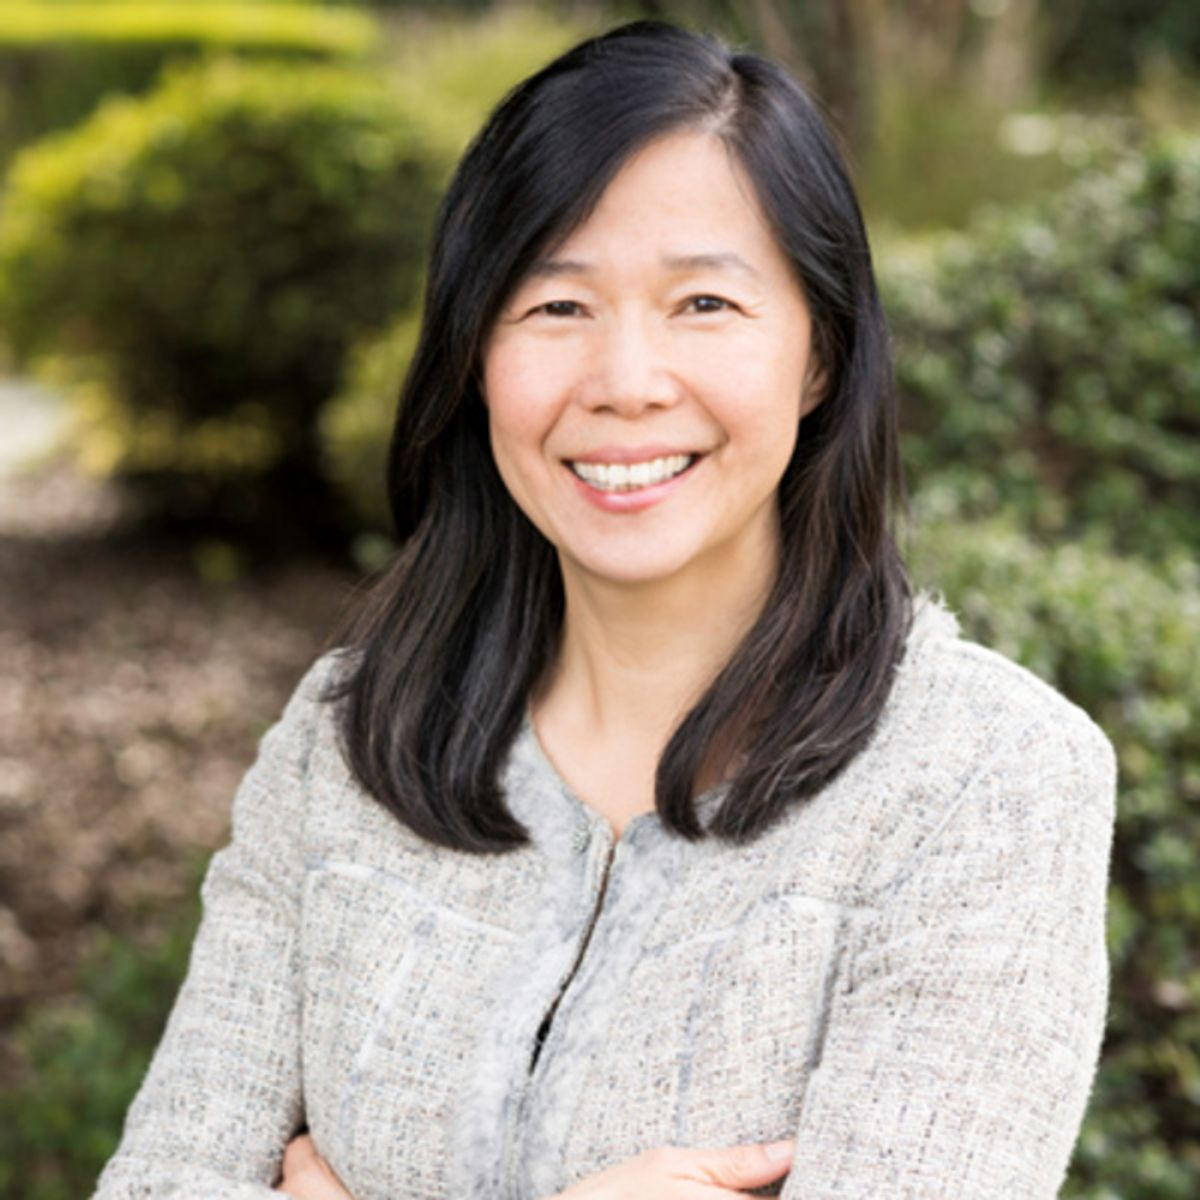 Photo of Marianne Wu, Managing Director at GE Ventures